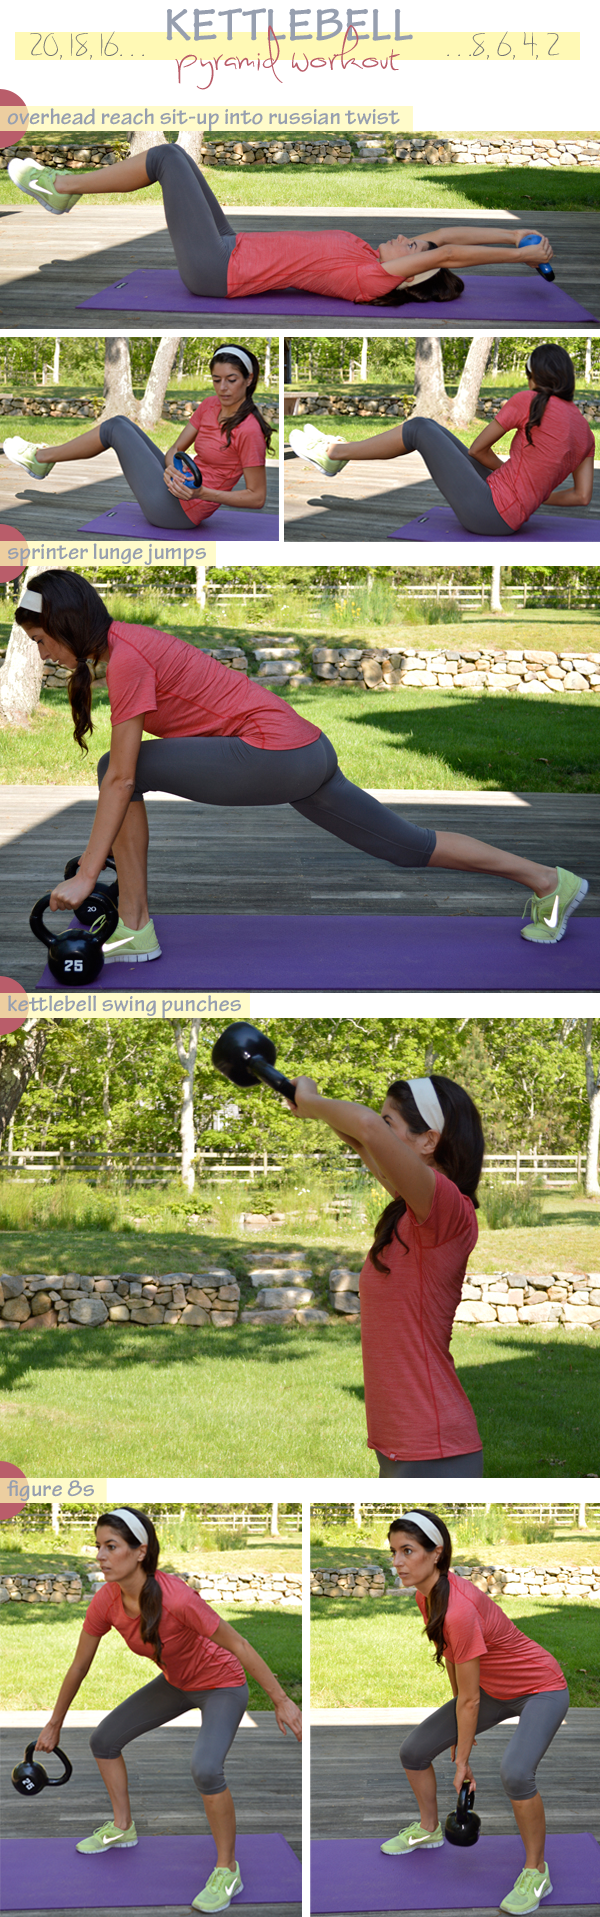 Kettlebell Pyramid Workout